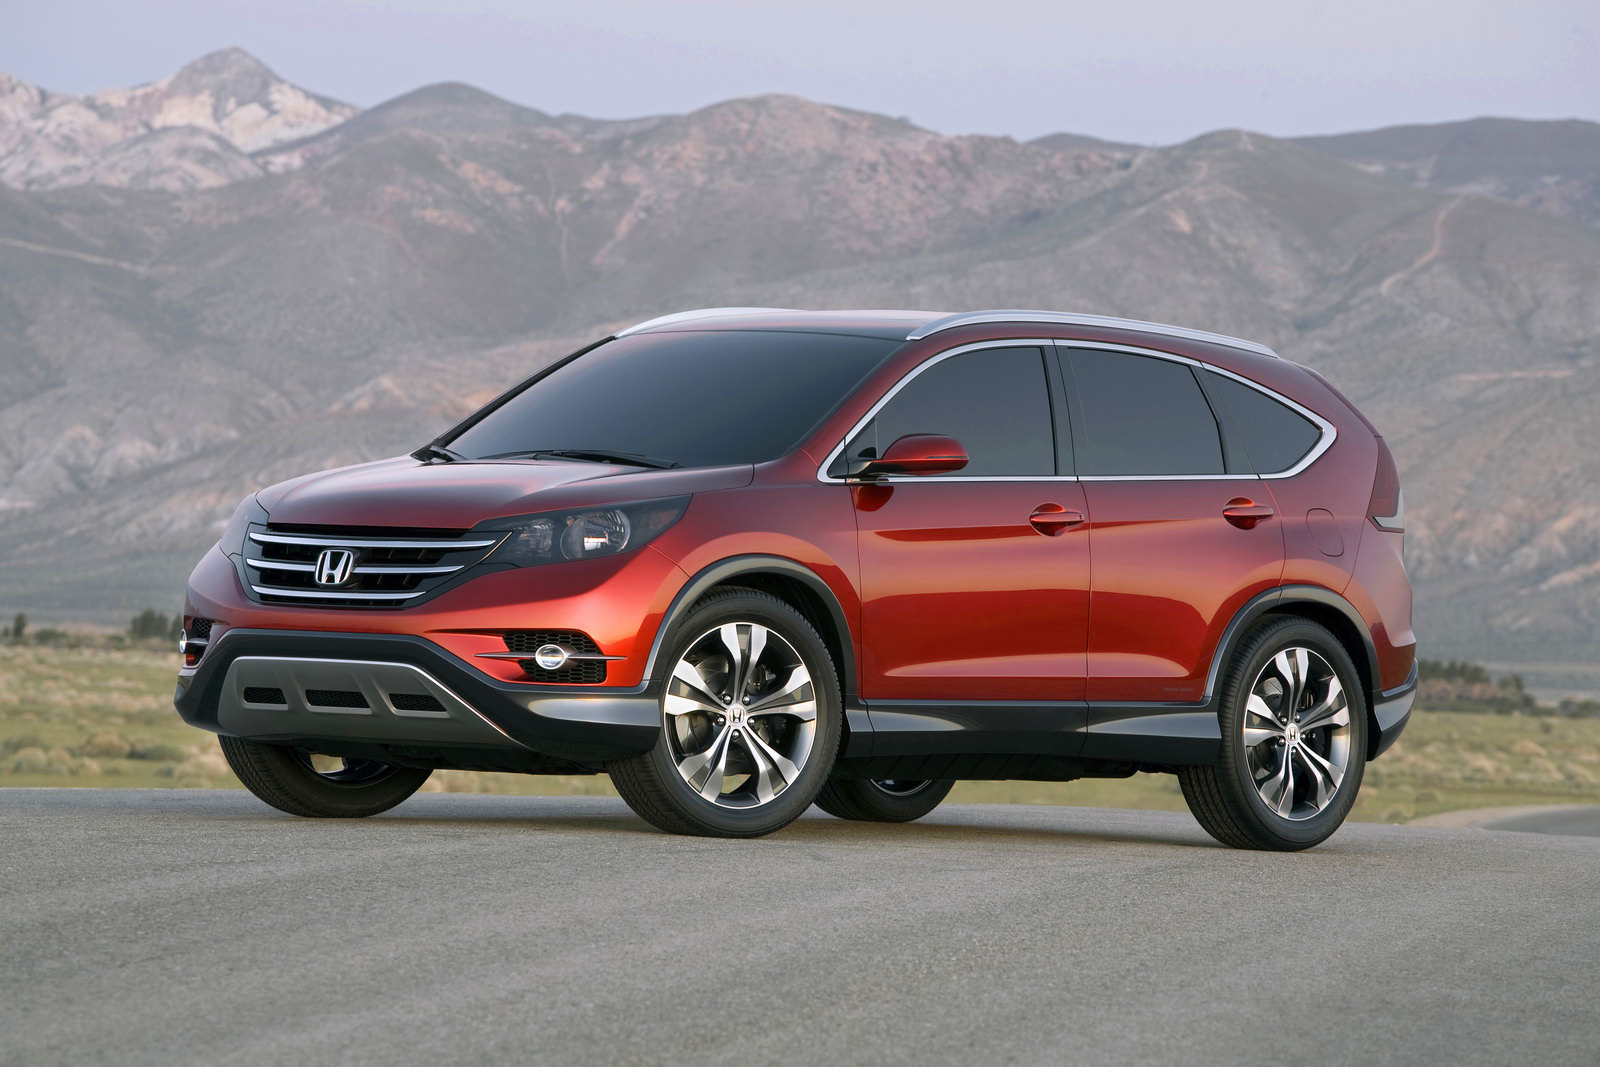 Honda Cr V Concept Unveiled In Full Autoevolution